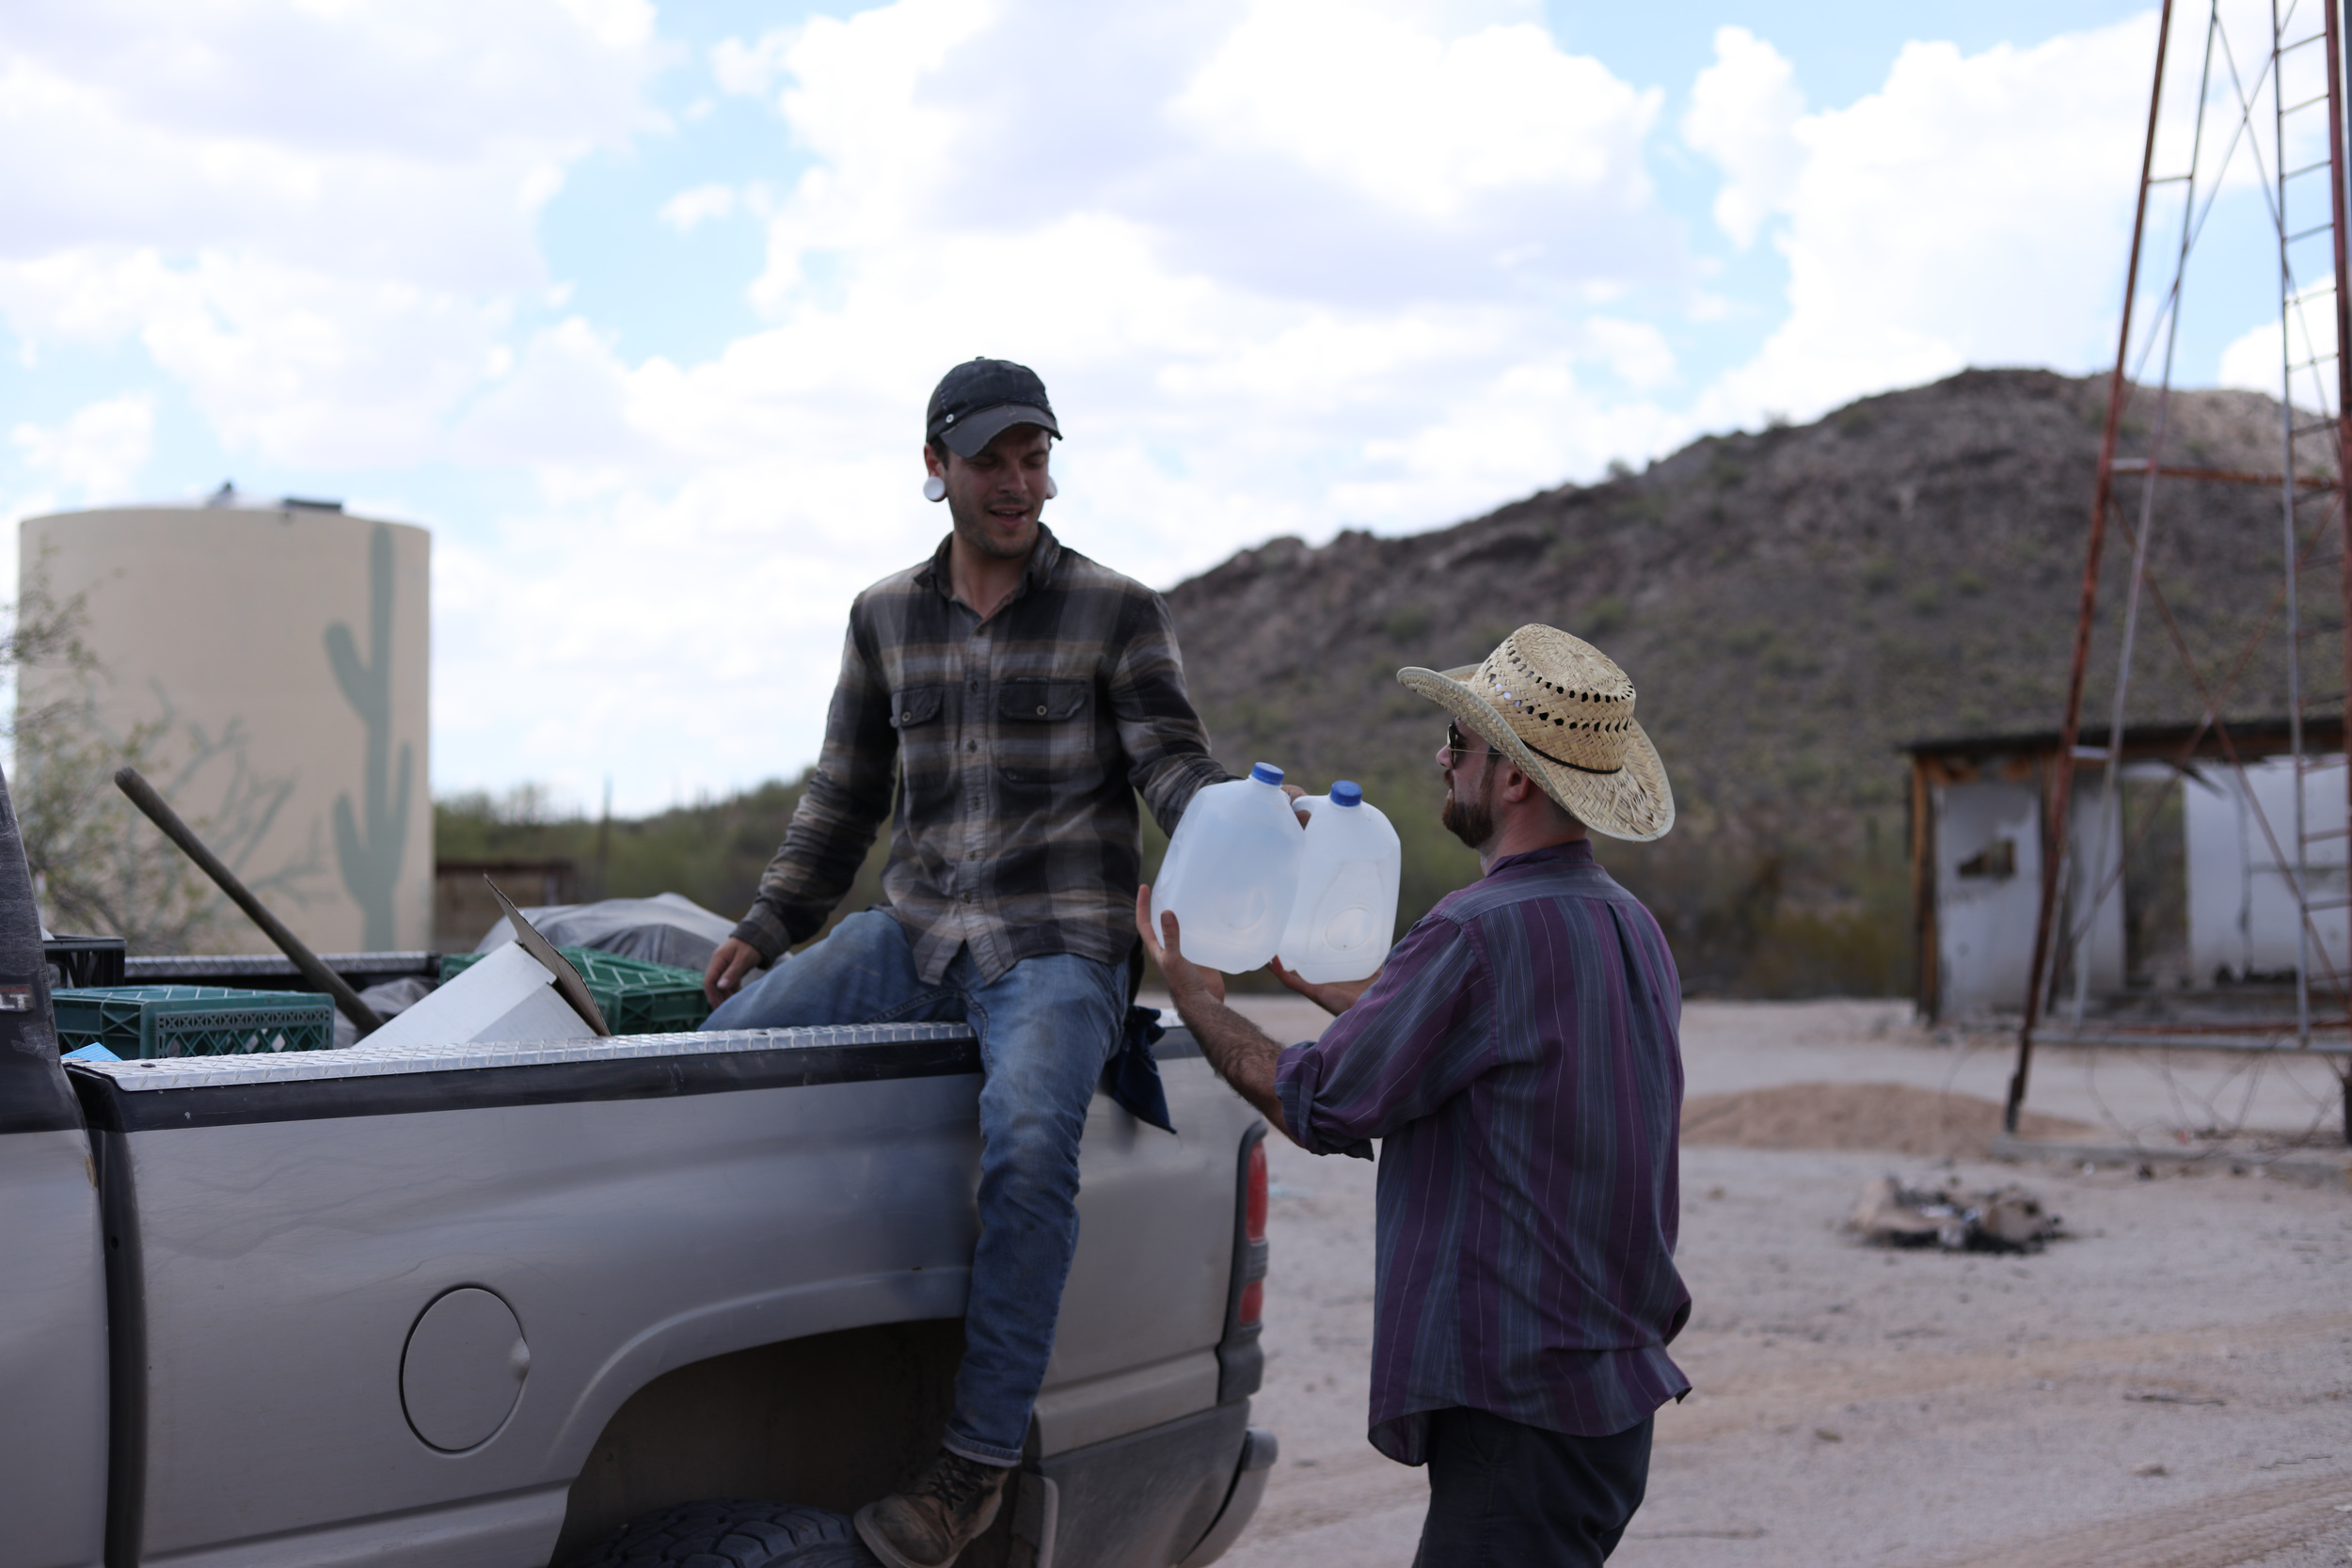 The water is hot enough to make coffee, as it sits in the back of the truck for long periods of time exposed to the sun.